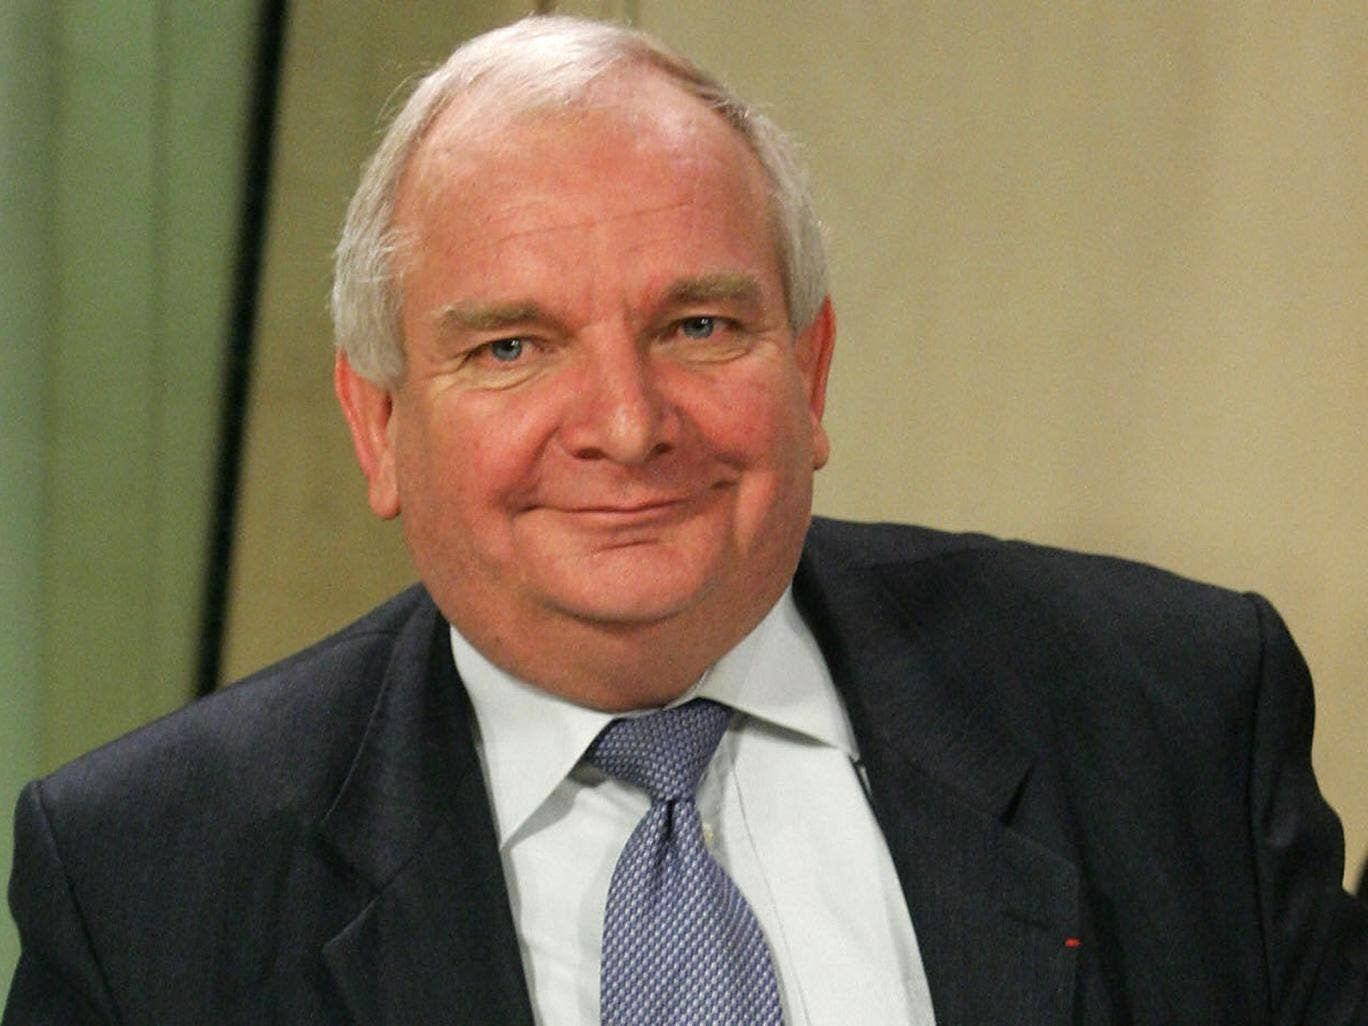 French MEP Joseph Daul prepares to give a press conference, 10 January 2007, at the EU Commission's Headquarters in Brussels after been selected new chairman of the centre-right EPP-ED in the European Parliament. Daul, of the French UMP party, was one of